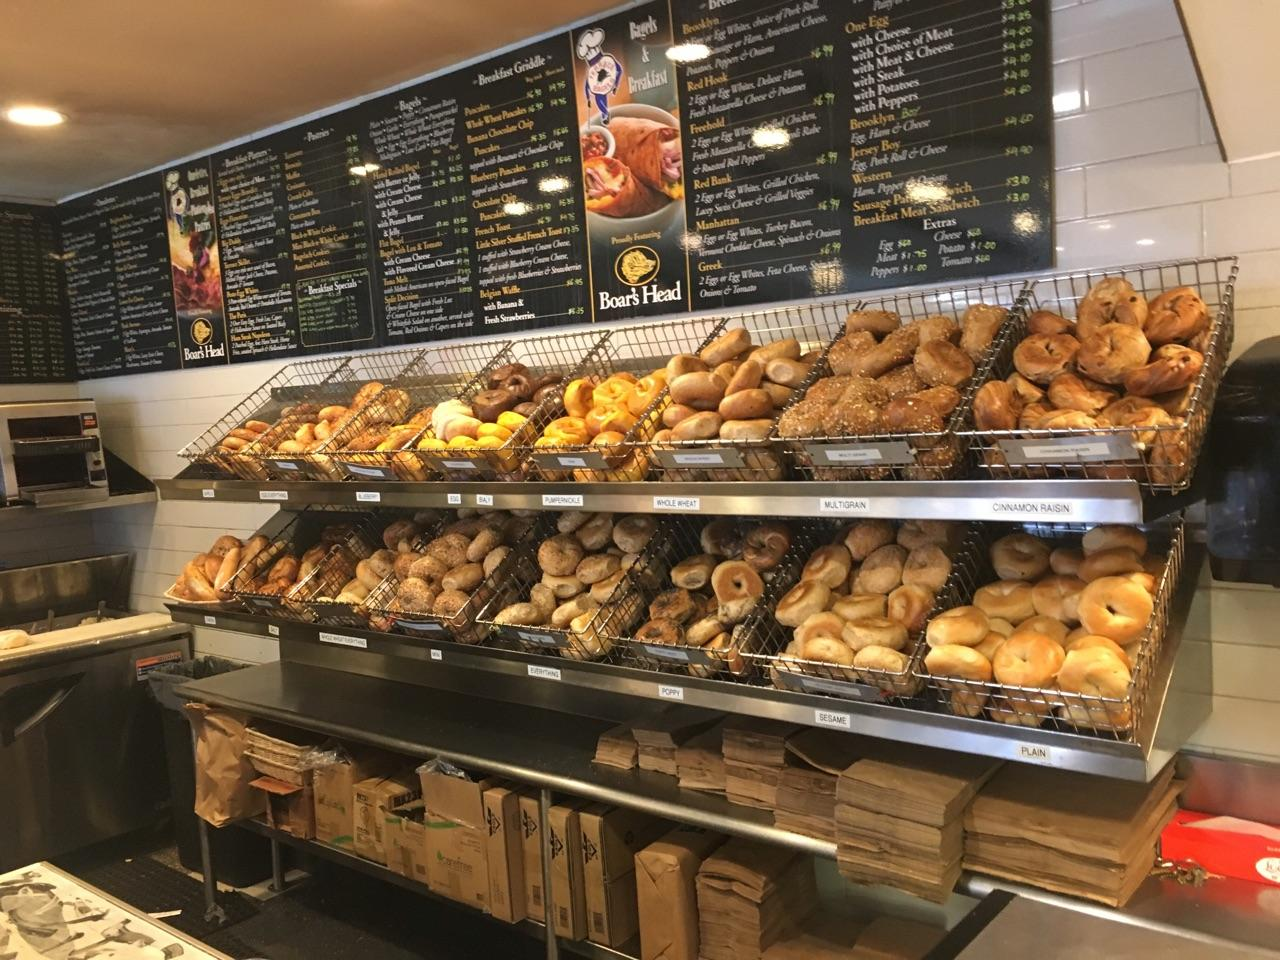 Several baskets of different flavor bagels